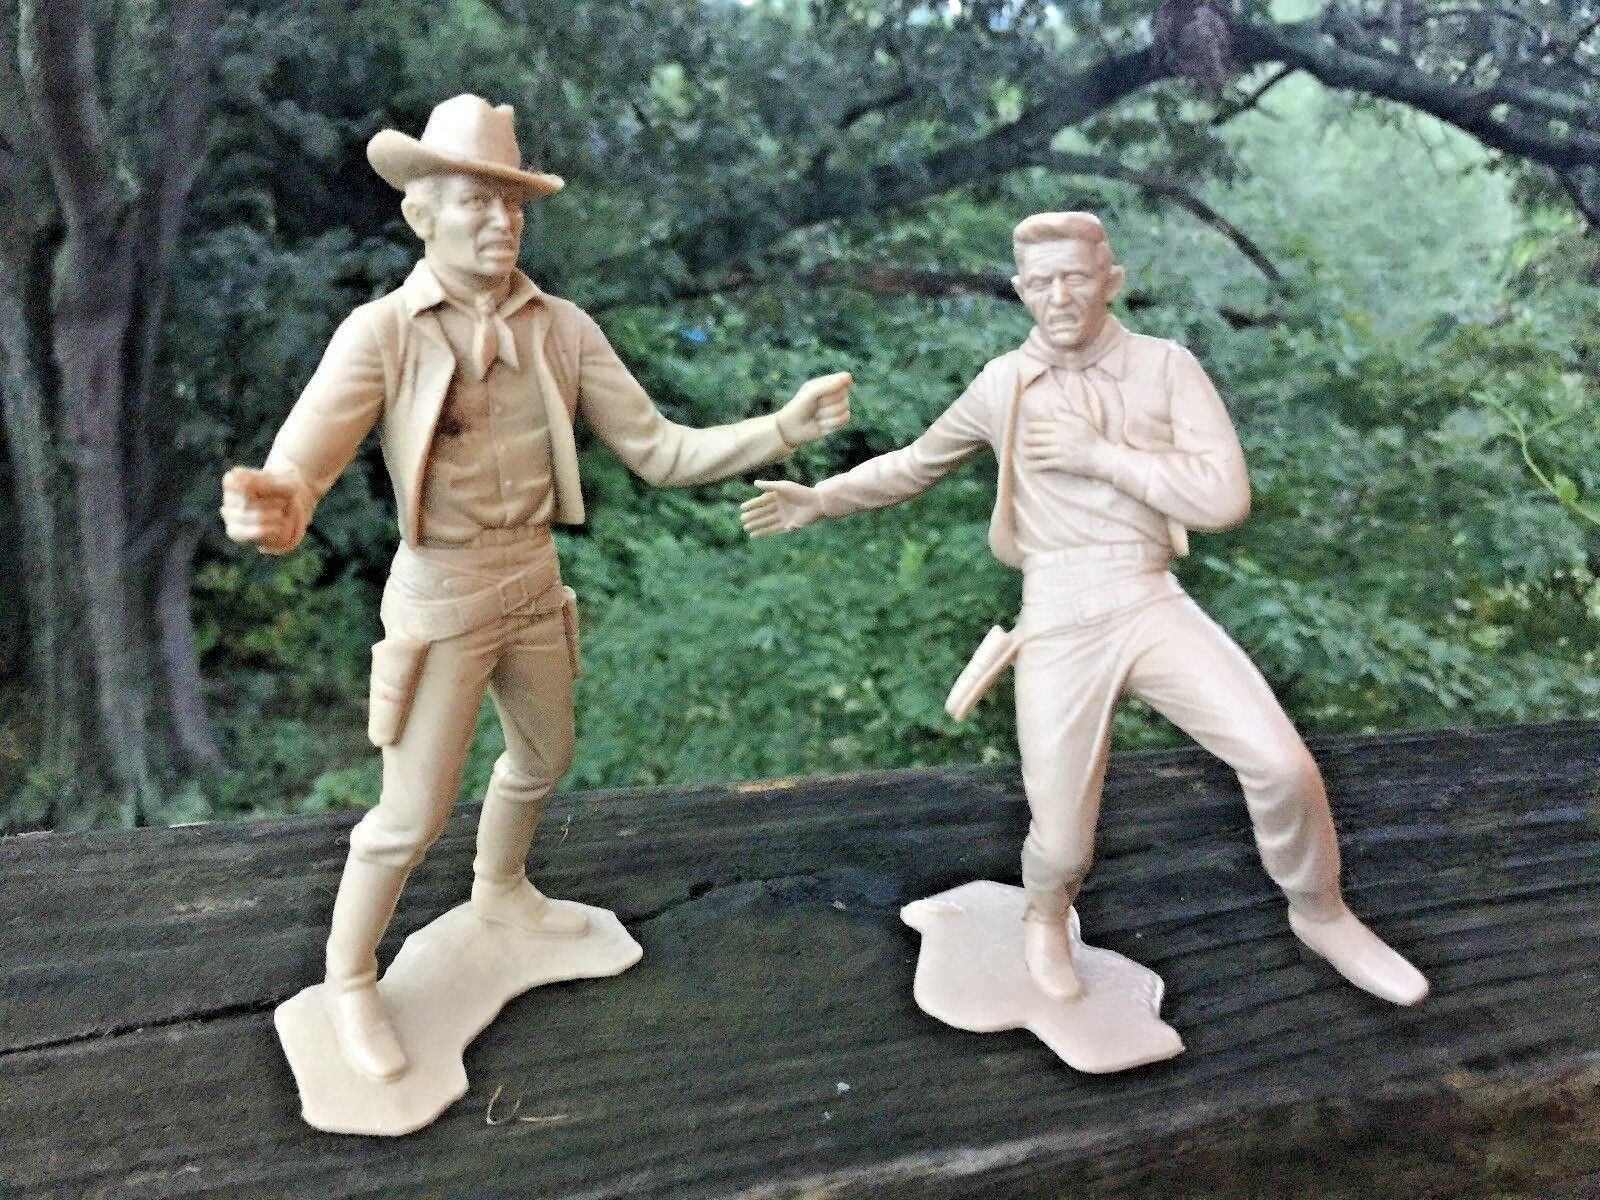 Antique Vintage COWBOY WESTERN Gun Fight OK CORRAL Cowboys MARX Figures SET  ️j8